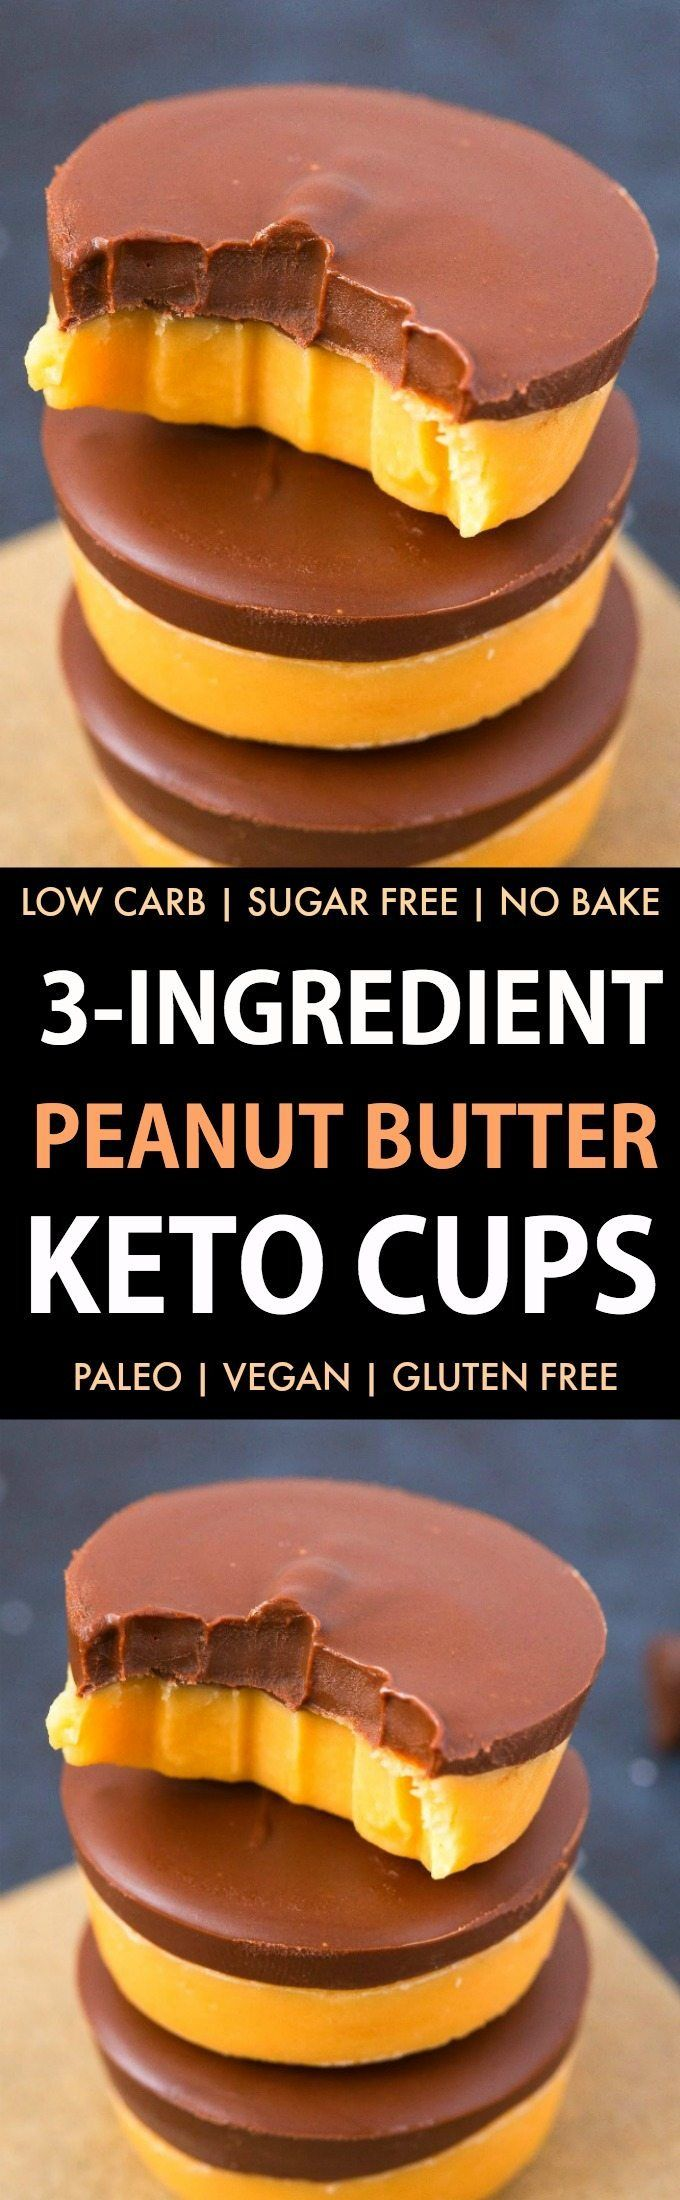 3-Ingredient Keto Peanut Butter Fudge (Paleo, Low Carb, Vegan, Sugar Free, Gluten Free)- Easy, smooth and creamy peanut butter fudge recipe using just 3 ingredients and needing 5 minutes! The Perfect snack or dessert to satisfy the sweet tooth! #keto #low